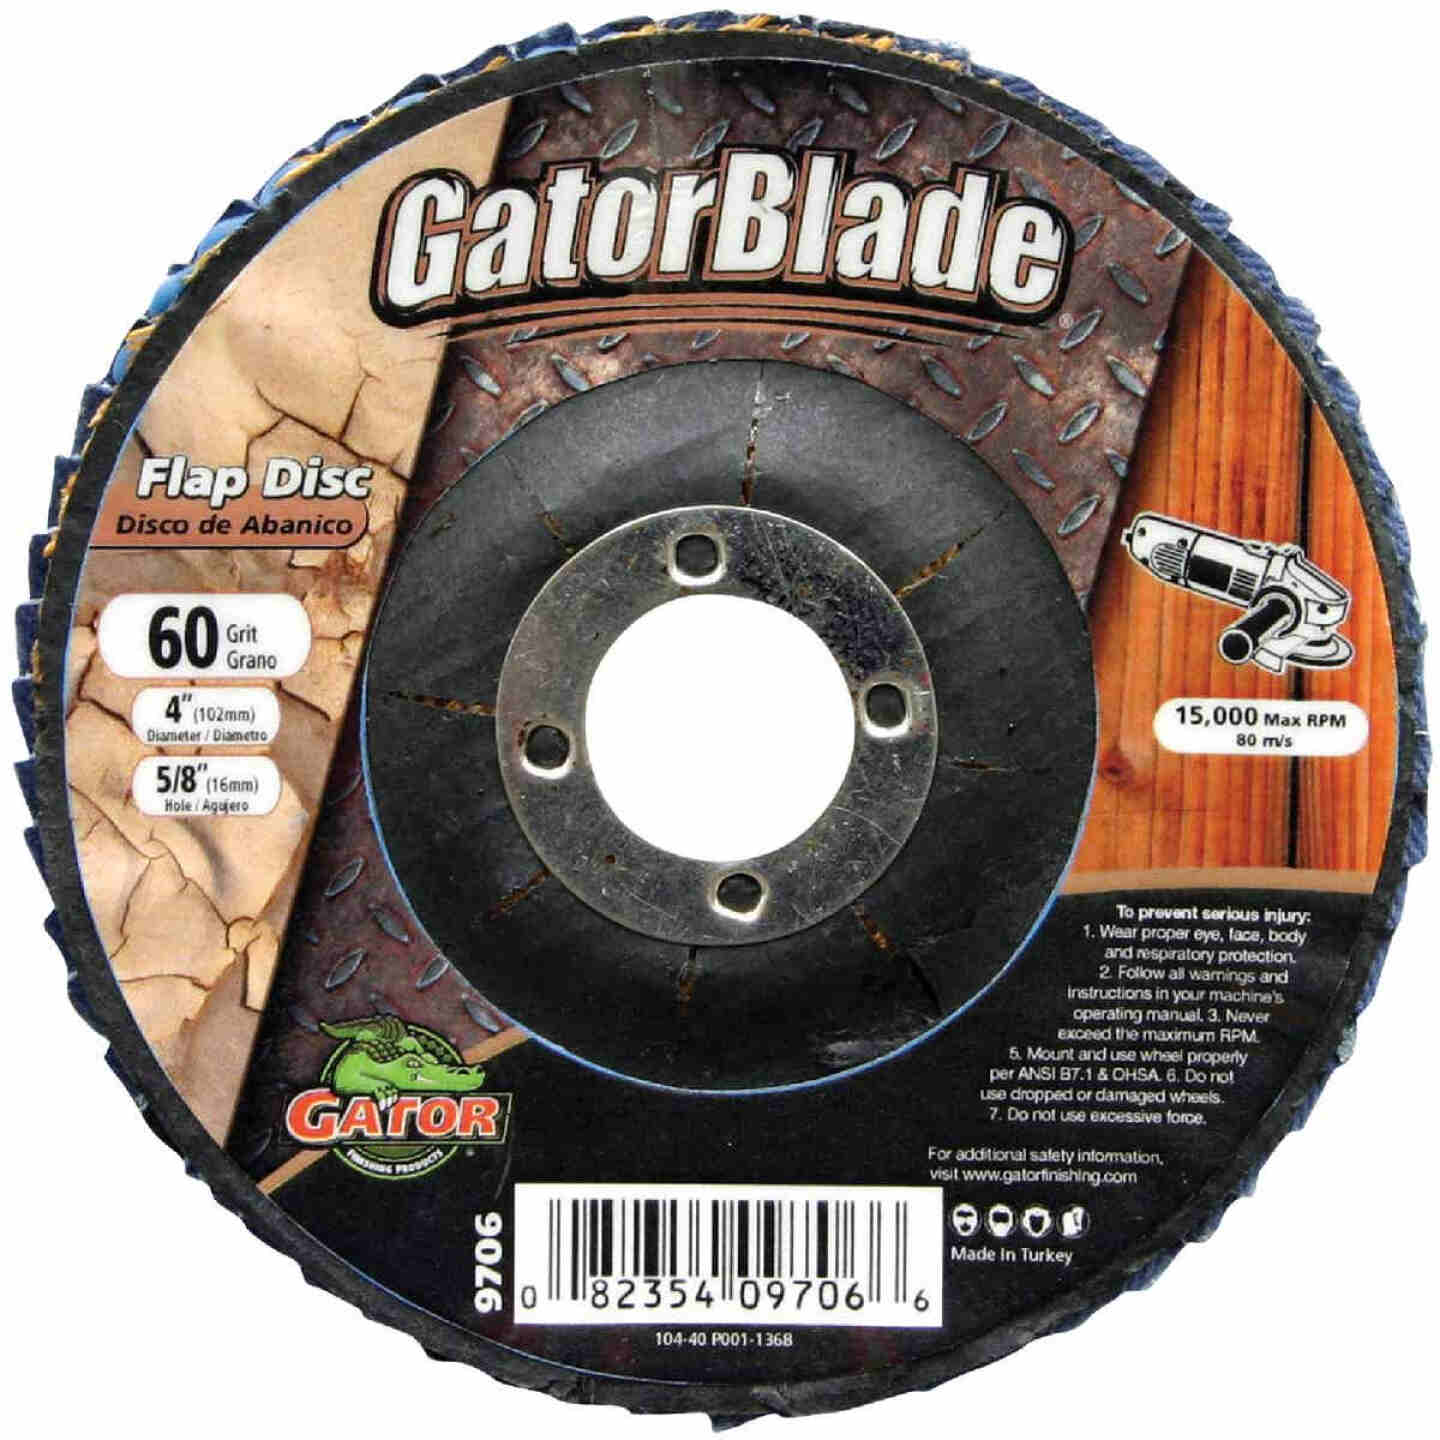 Gator Blade 4 In. x 5/8 In. 60-Grit Type 29 Angle Grinder Flap Disc Image 1